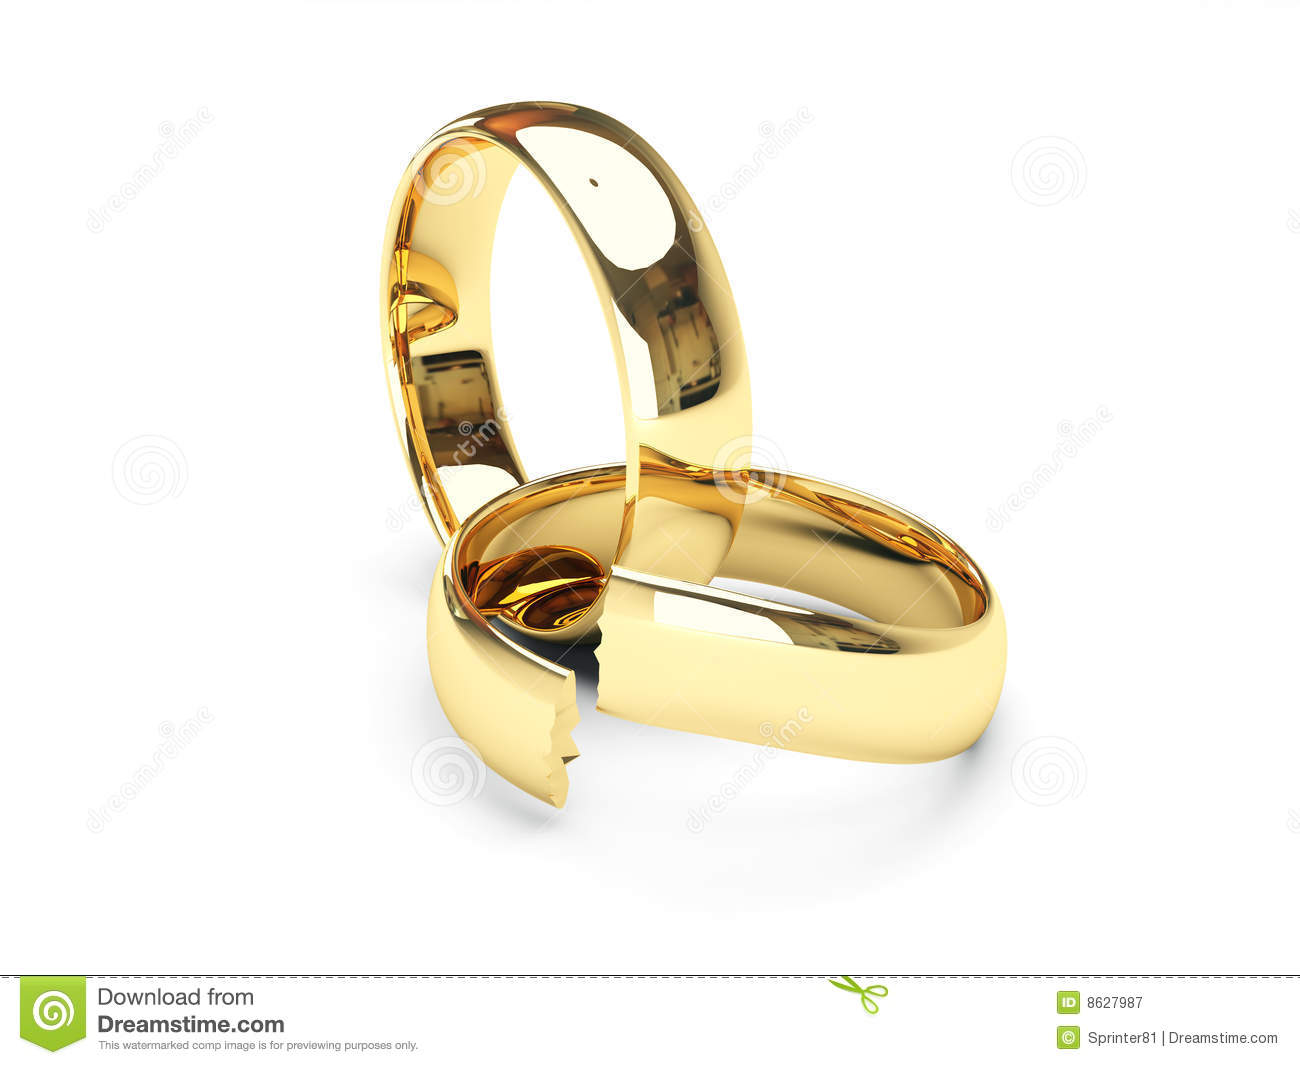 Broken Gold Wedding Rings Royalty Free Stock Photography. Silver Pendant. Pearl Diamond Necklace. Championship Rings. Gold And Diamond Band. Local Jewelry Stores. Wrist Bracelet. 24 Karat Rings. Fashion Bangles